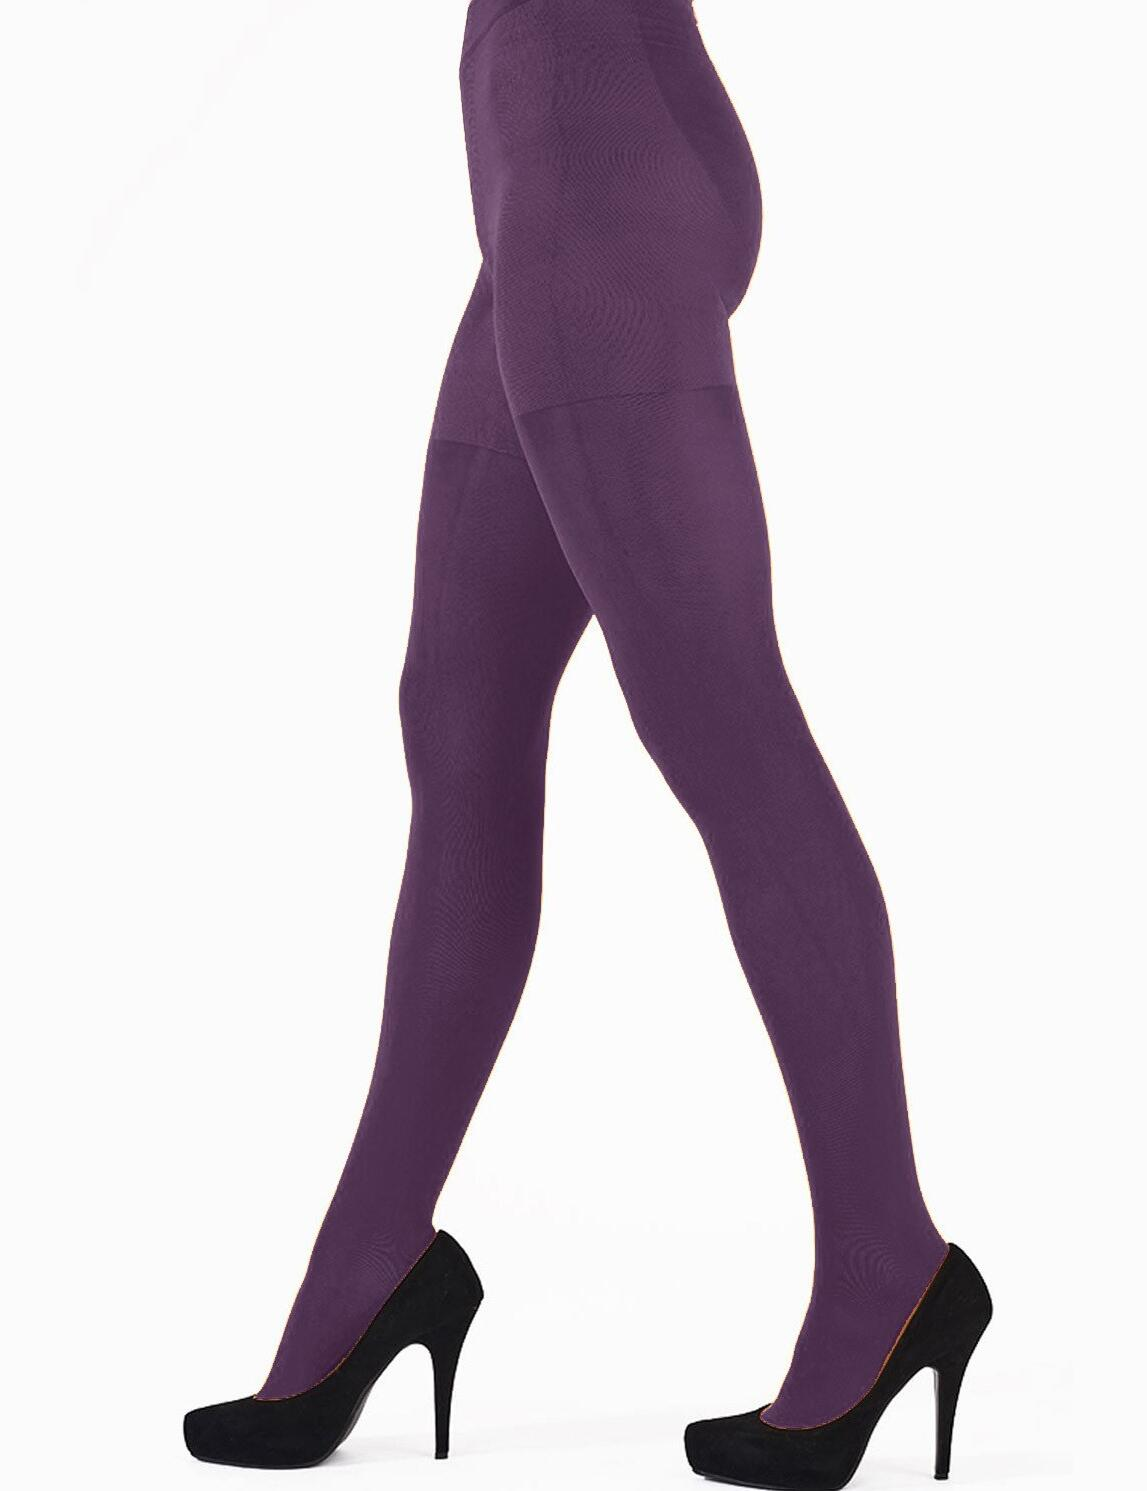 4ab686c155d Pretty Polly 60 Denier 3D Coloured Opaque Tights. Red Tights